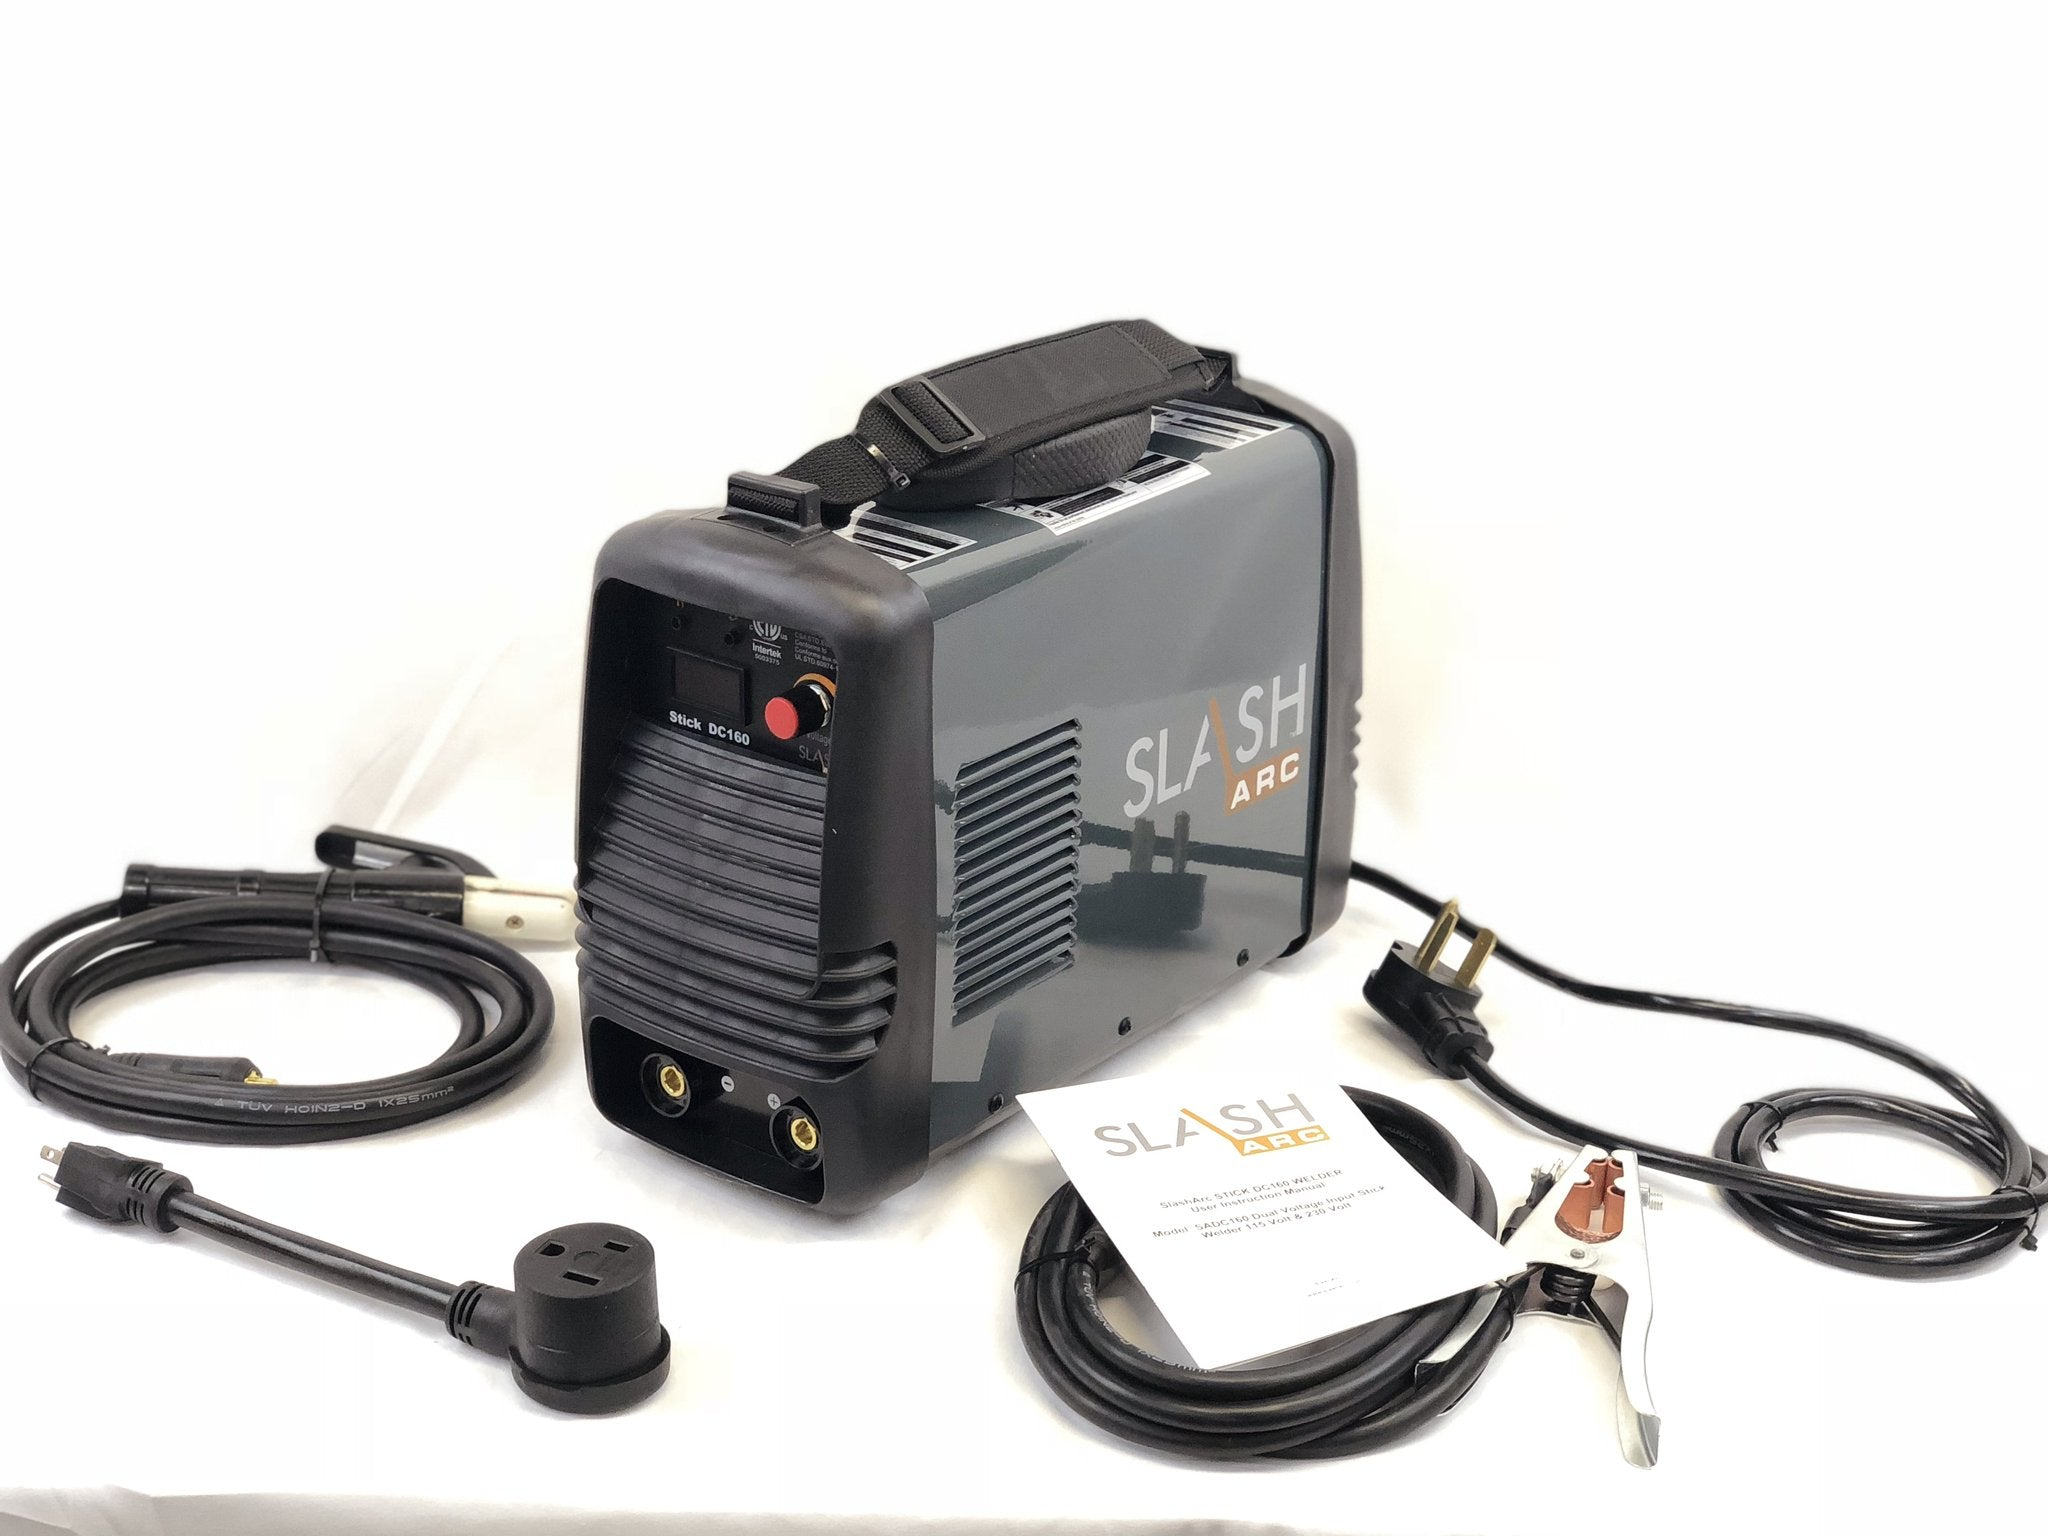 SlashArc DC 160 Dual voltage input Stick Welder package 115/230v 1 ...